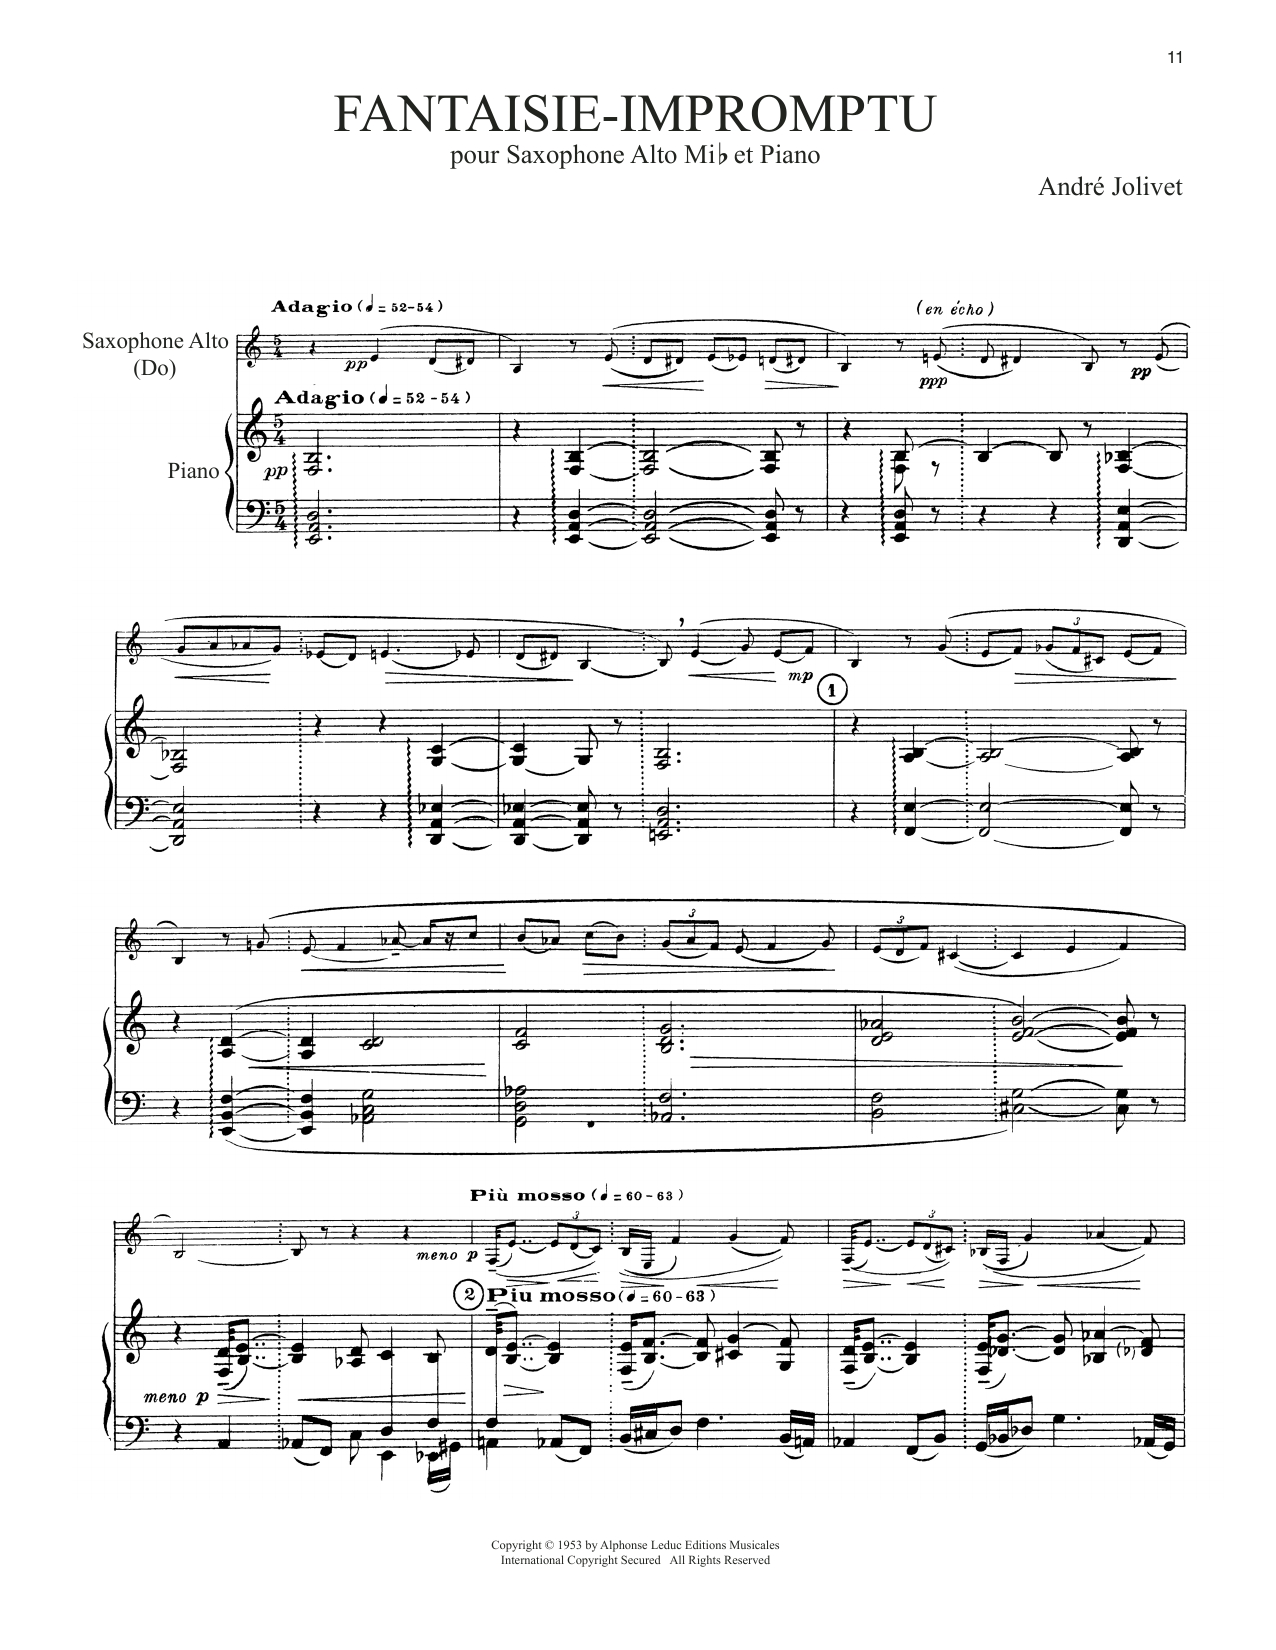 Download Andre Jolivet 'Fantaisie-Impromptu' Digital Sheet Music Notes & Chords and start playing in minutes